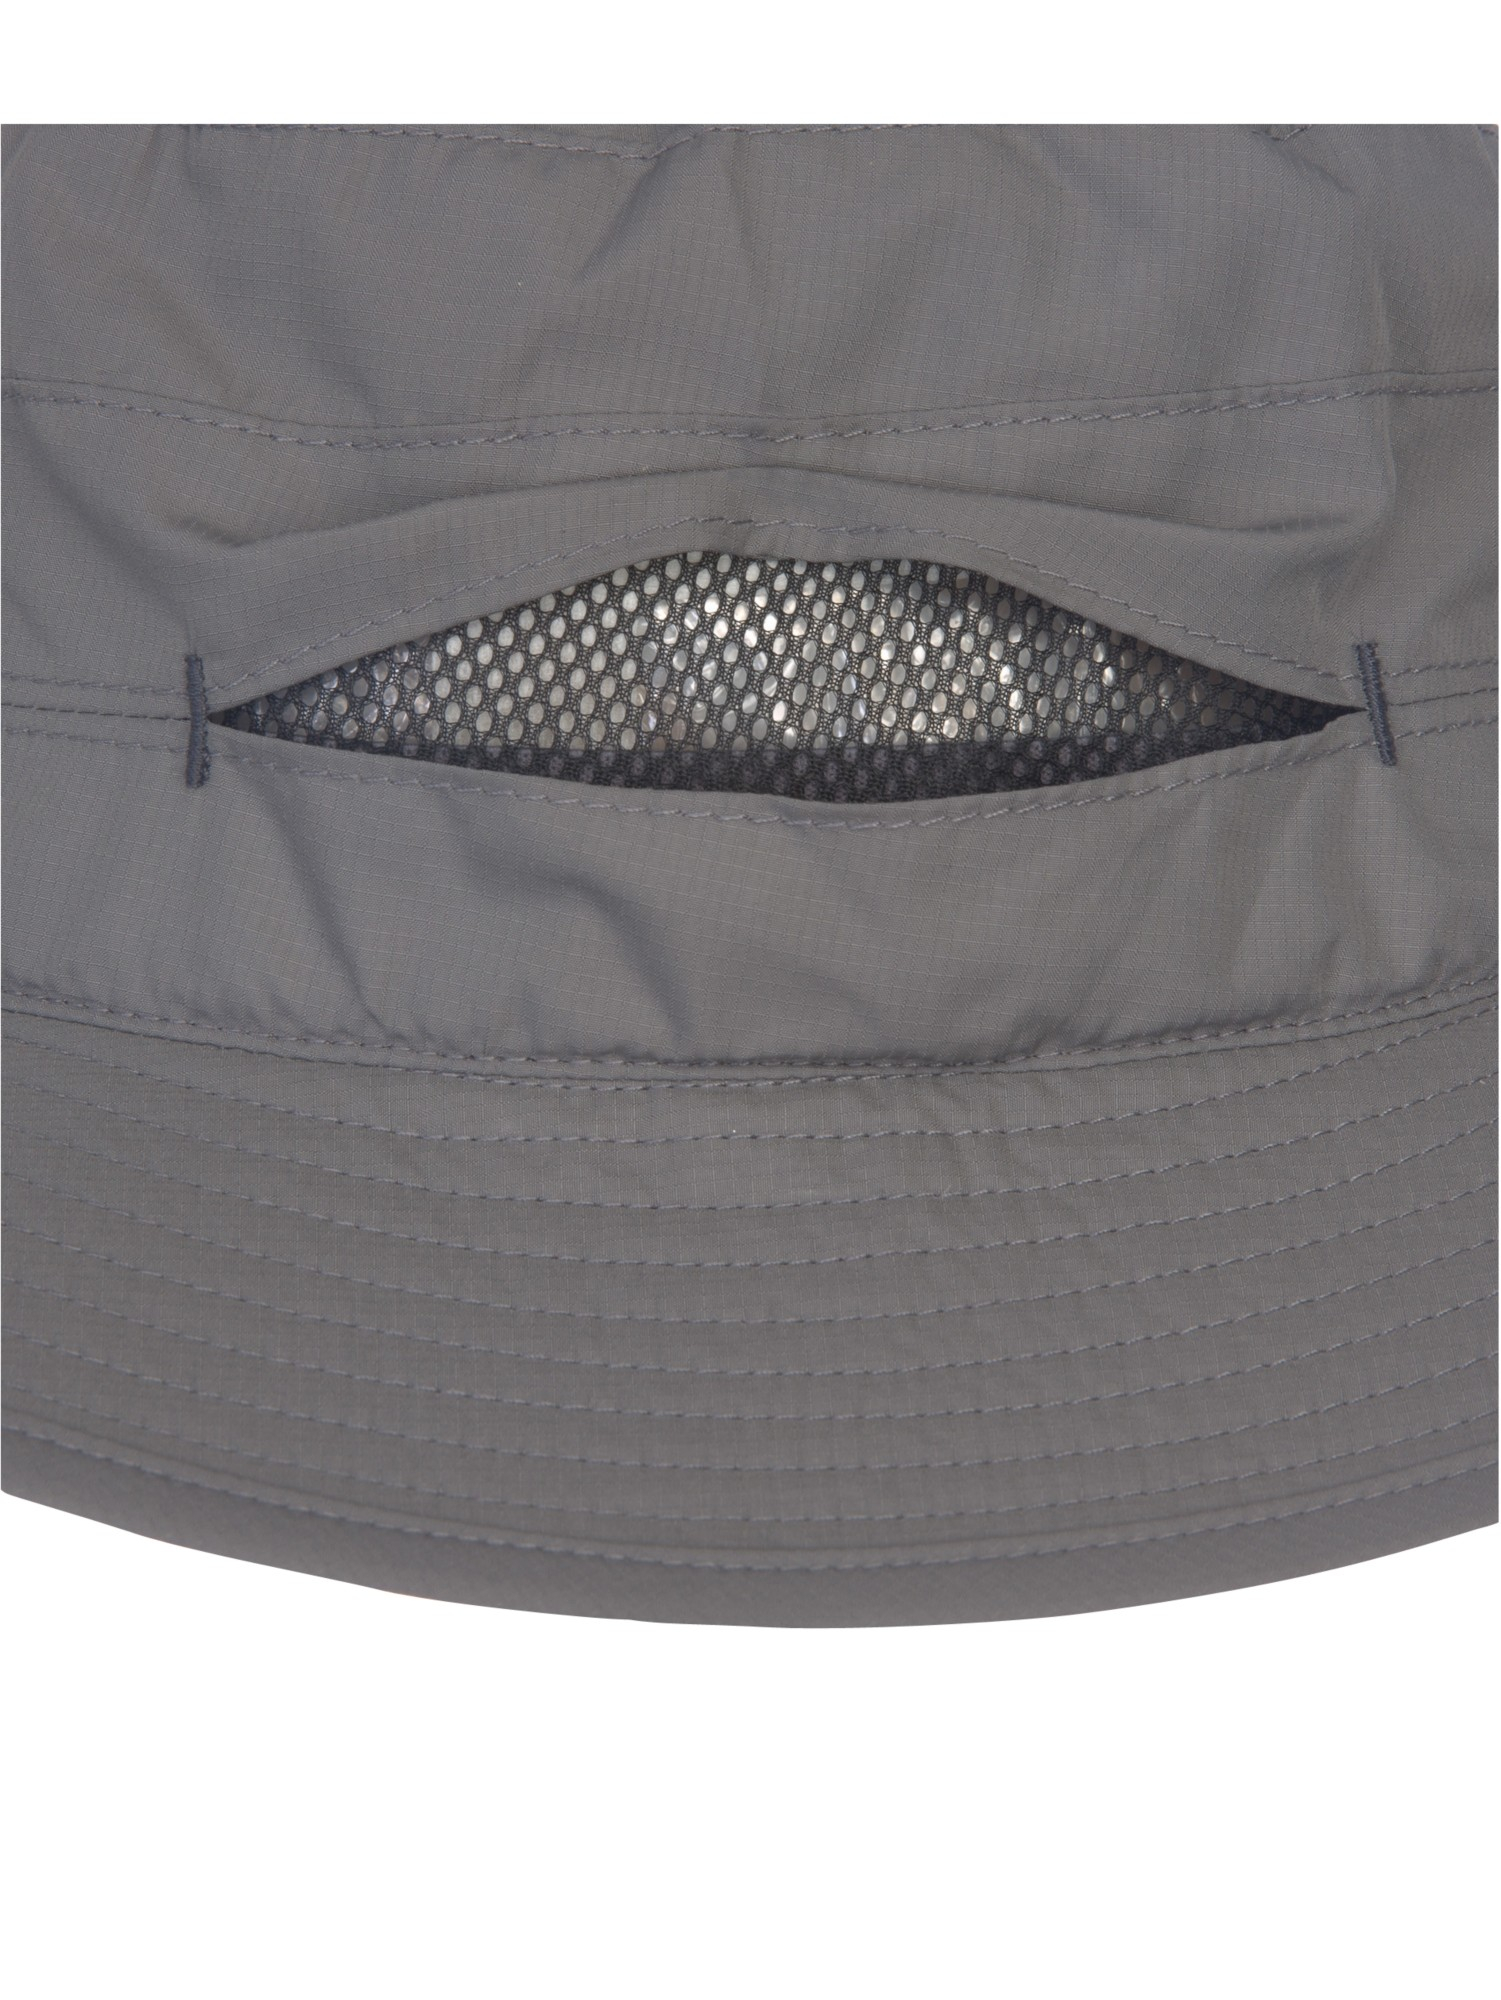 03089e8703124c The North Face Bucket Ii Sun Hat in Gray for Men - Lyst